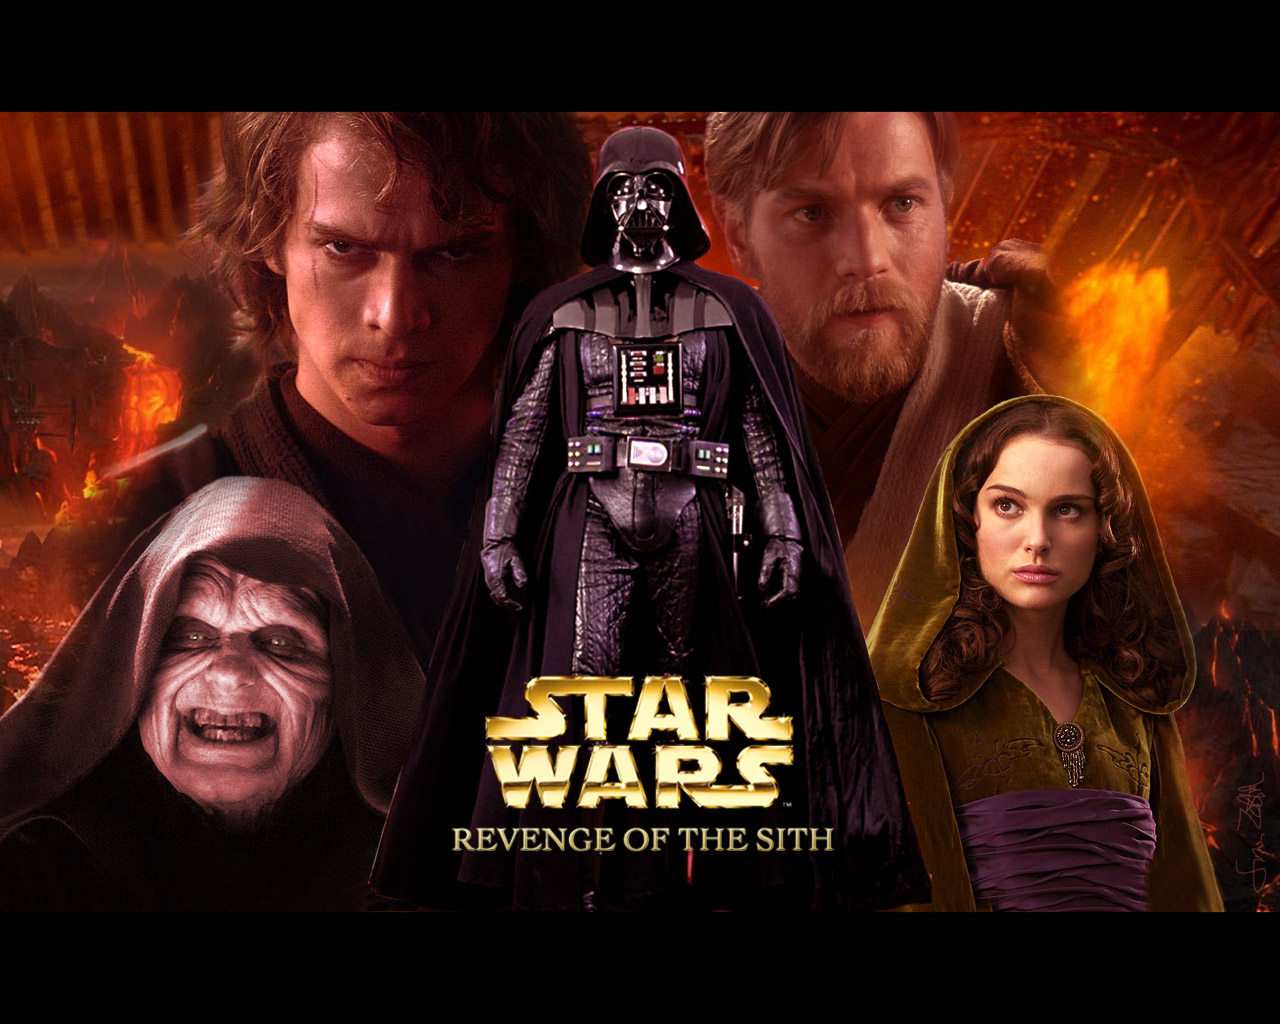 Star Wars club for girls images Revenge of the sith! HD wallpaper and ...